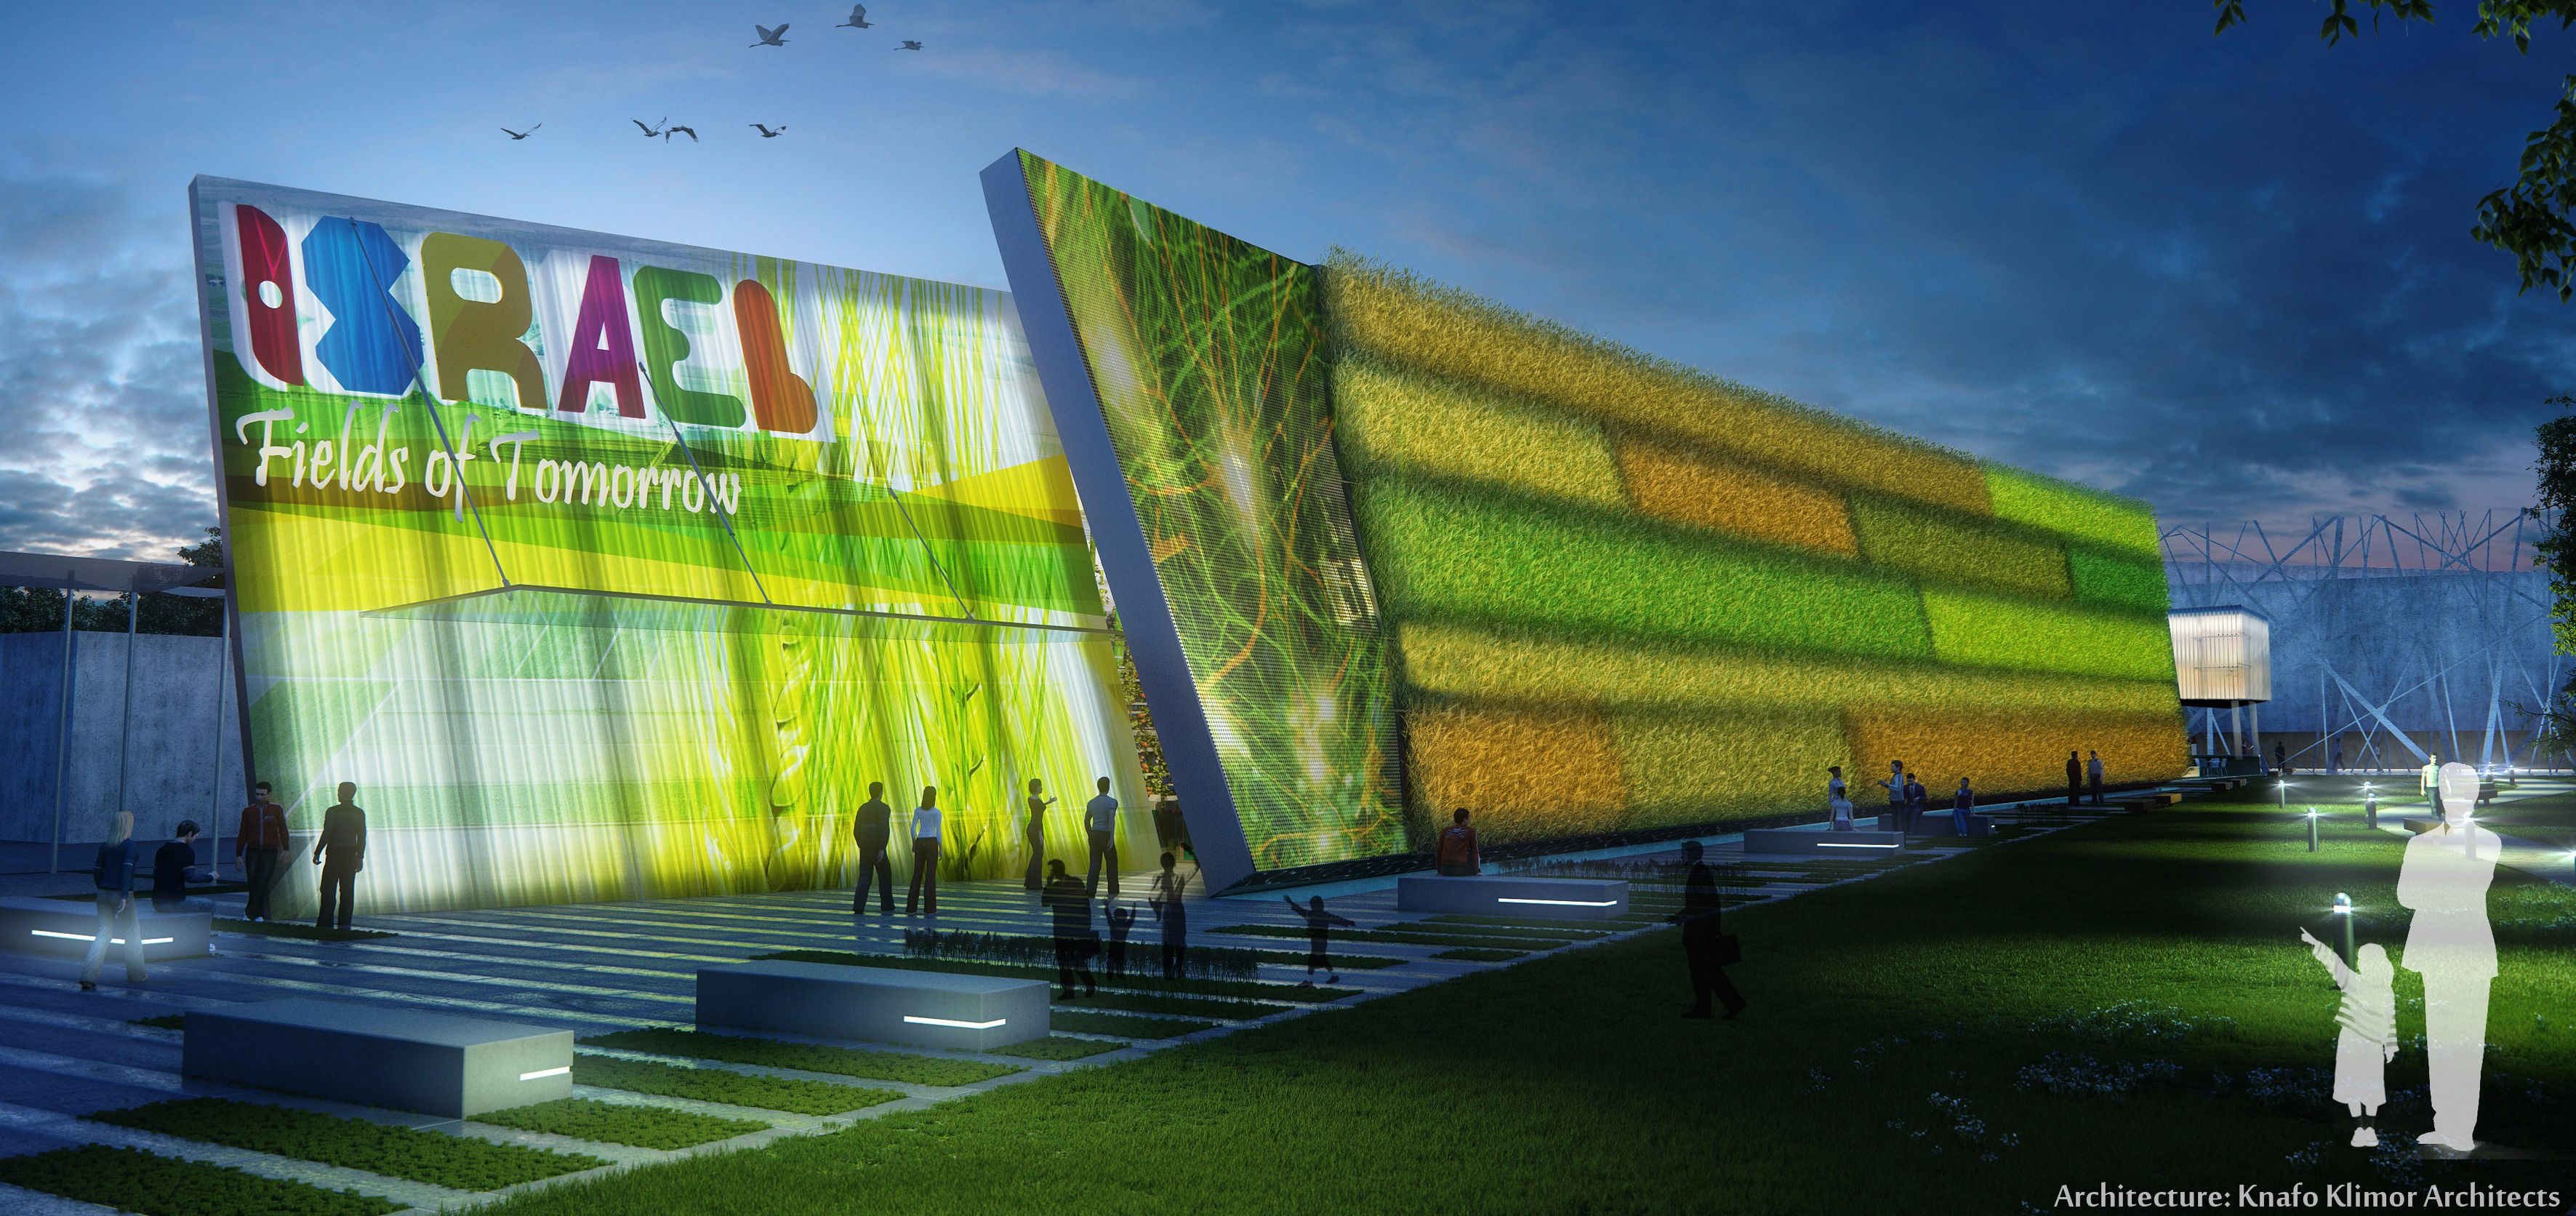 Vertical Garden: At Expo 2015 in Milan, Israel will be represented by a futuristic billboard made of wheat, rice and corn.